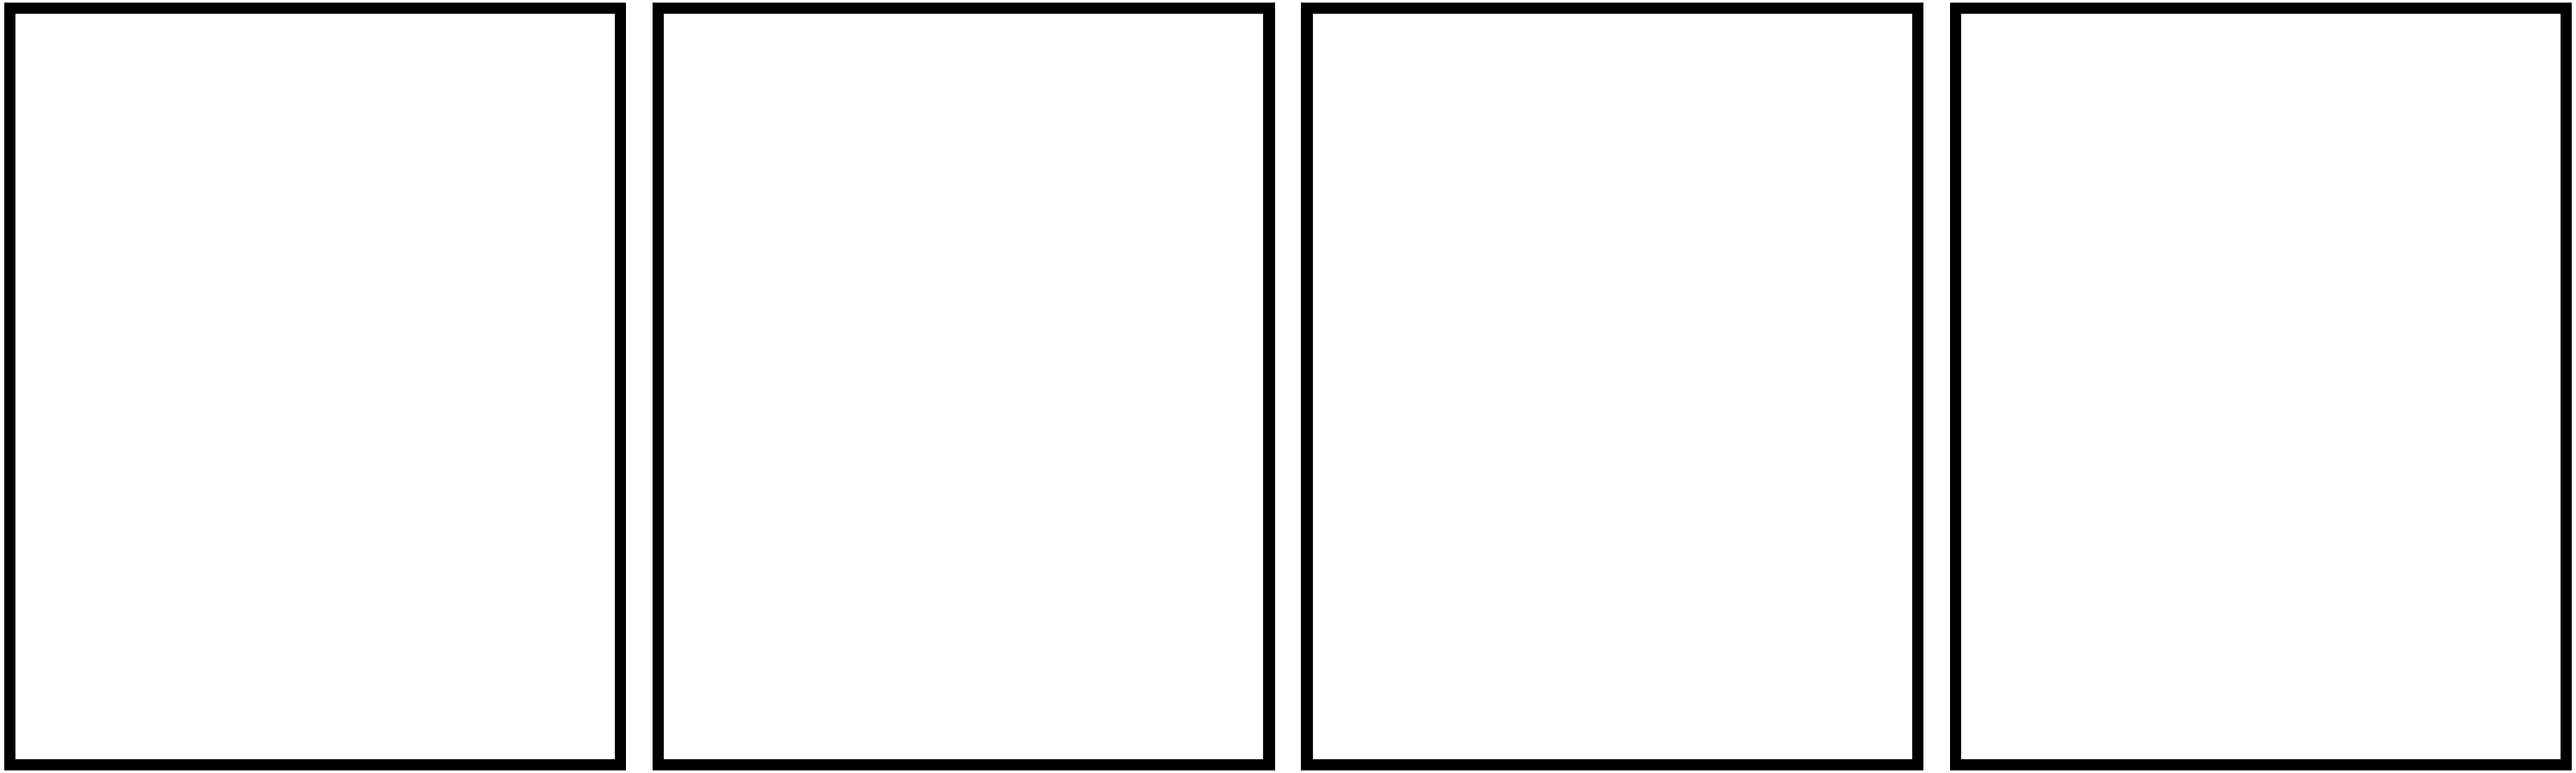 four panel comic strip template - search results for blank comic strips calendar 2015